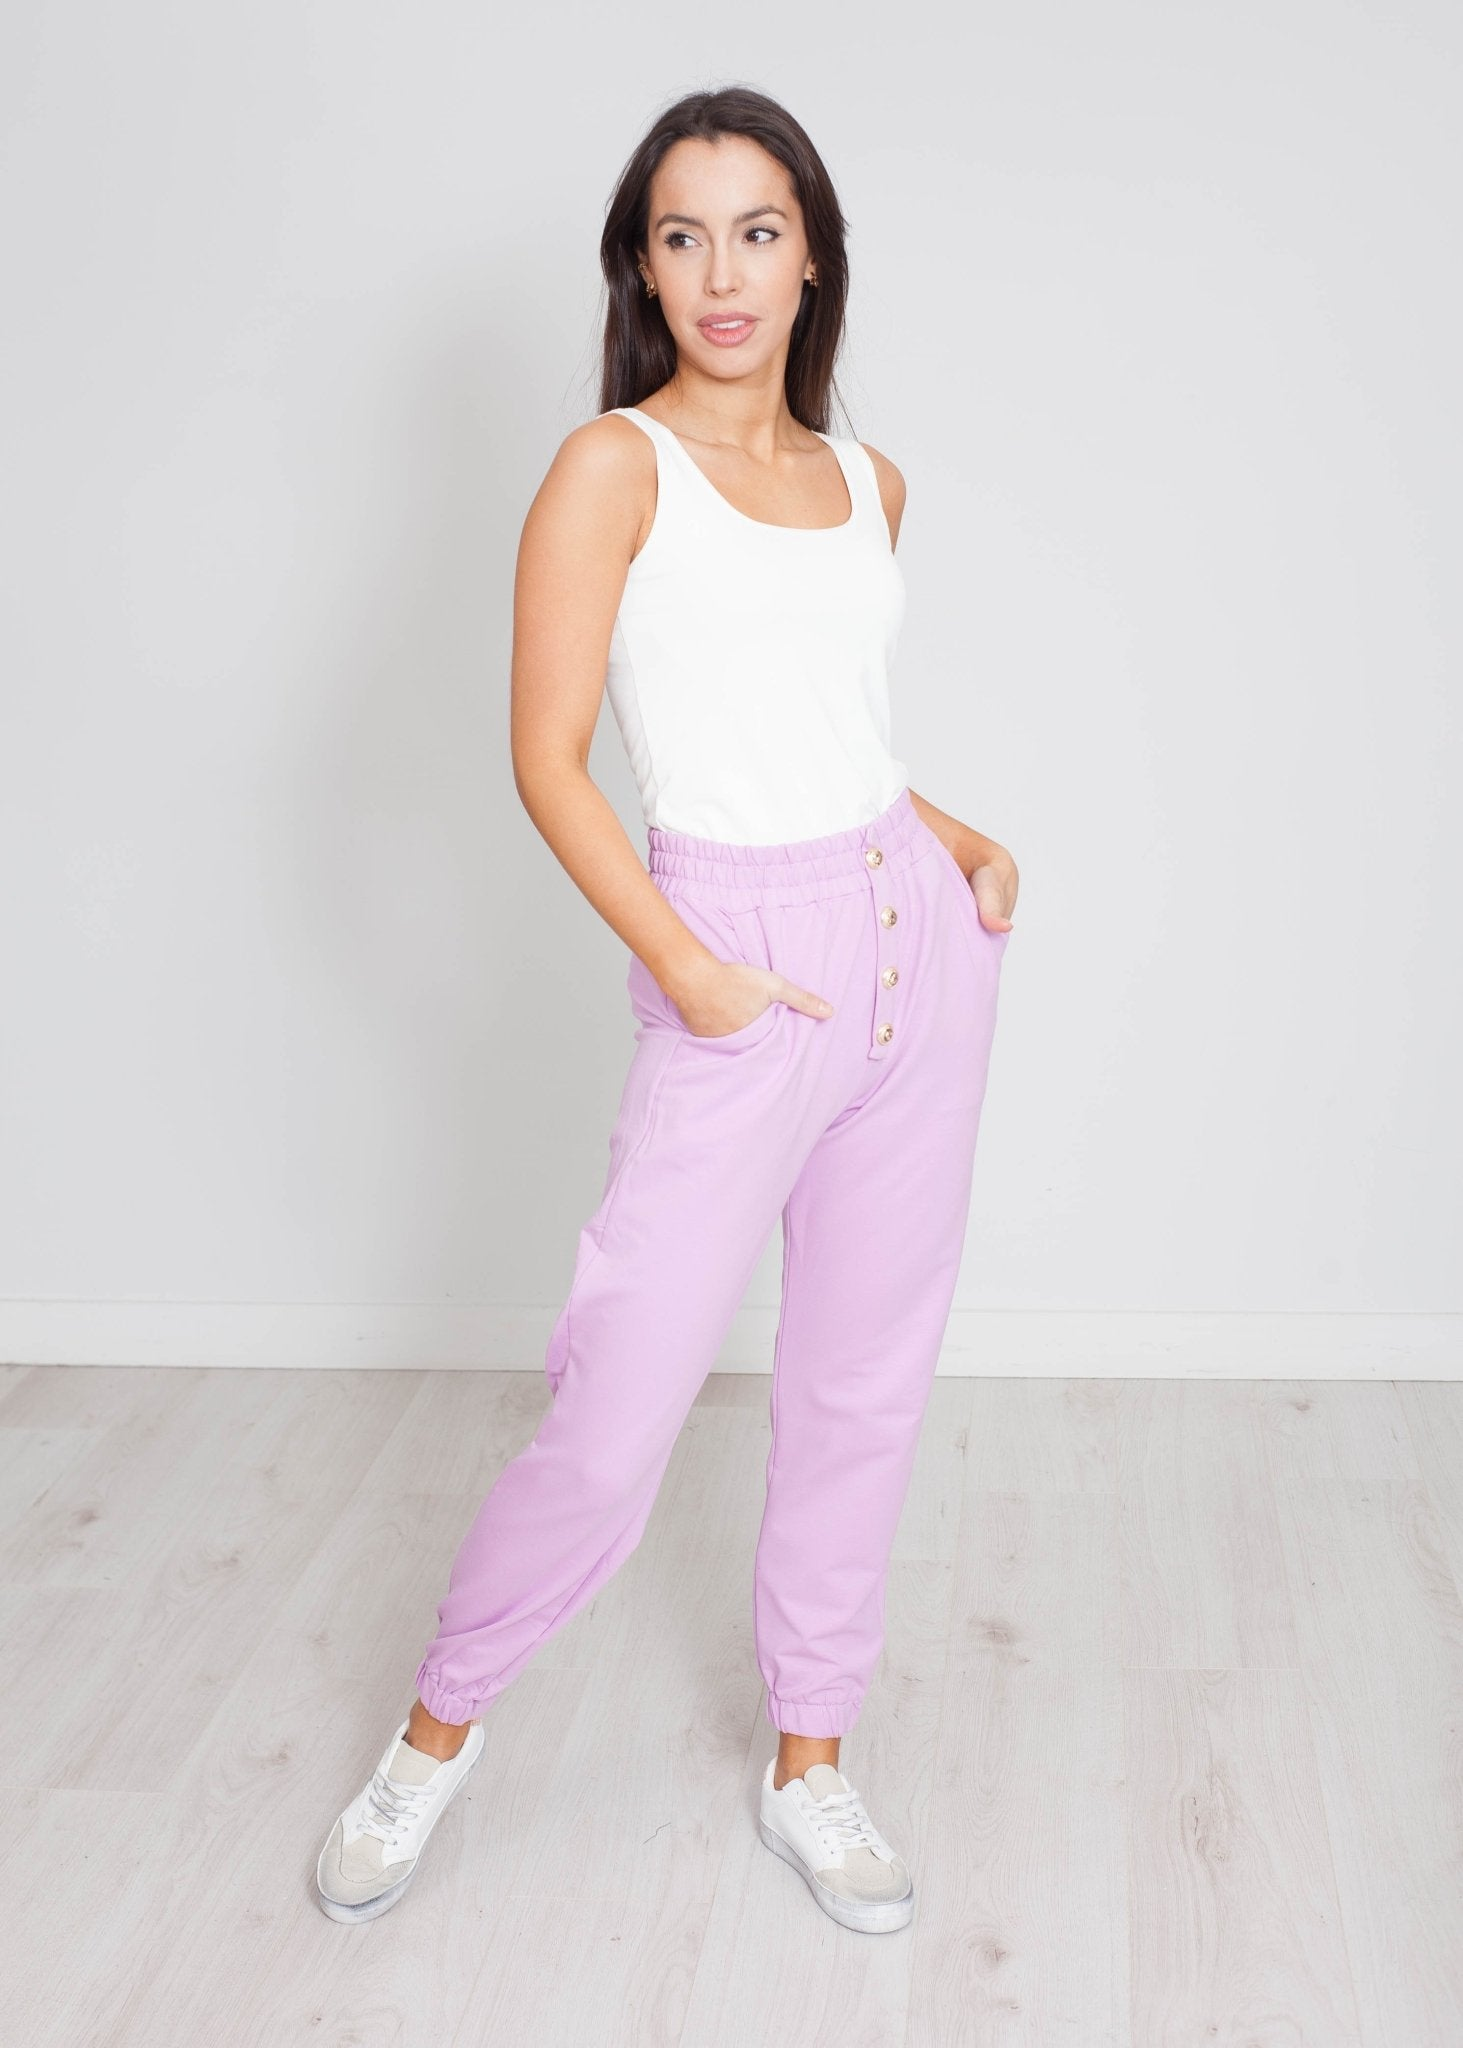 Scarlet Button Joggers In Lilac - The Walk in Wardrobe